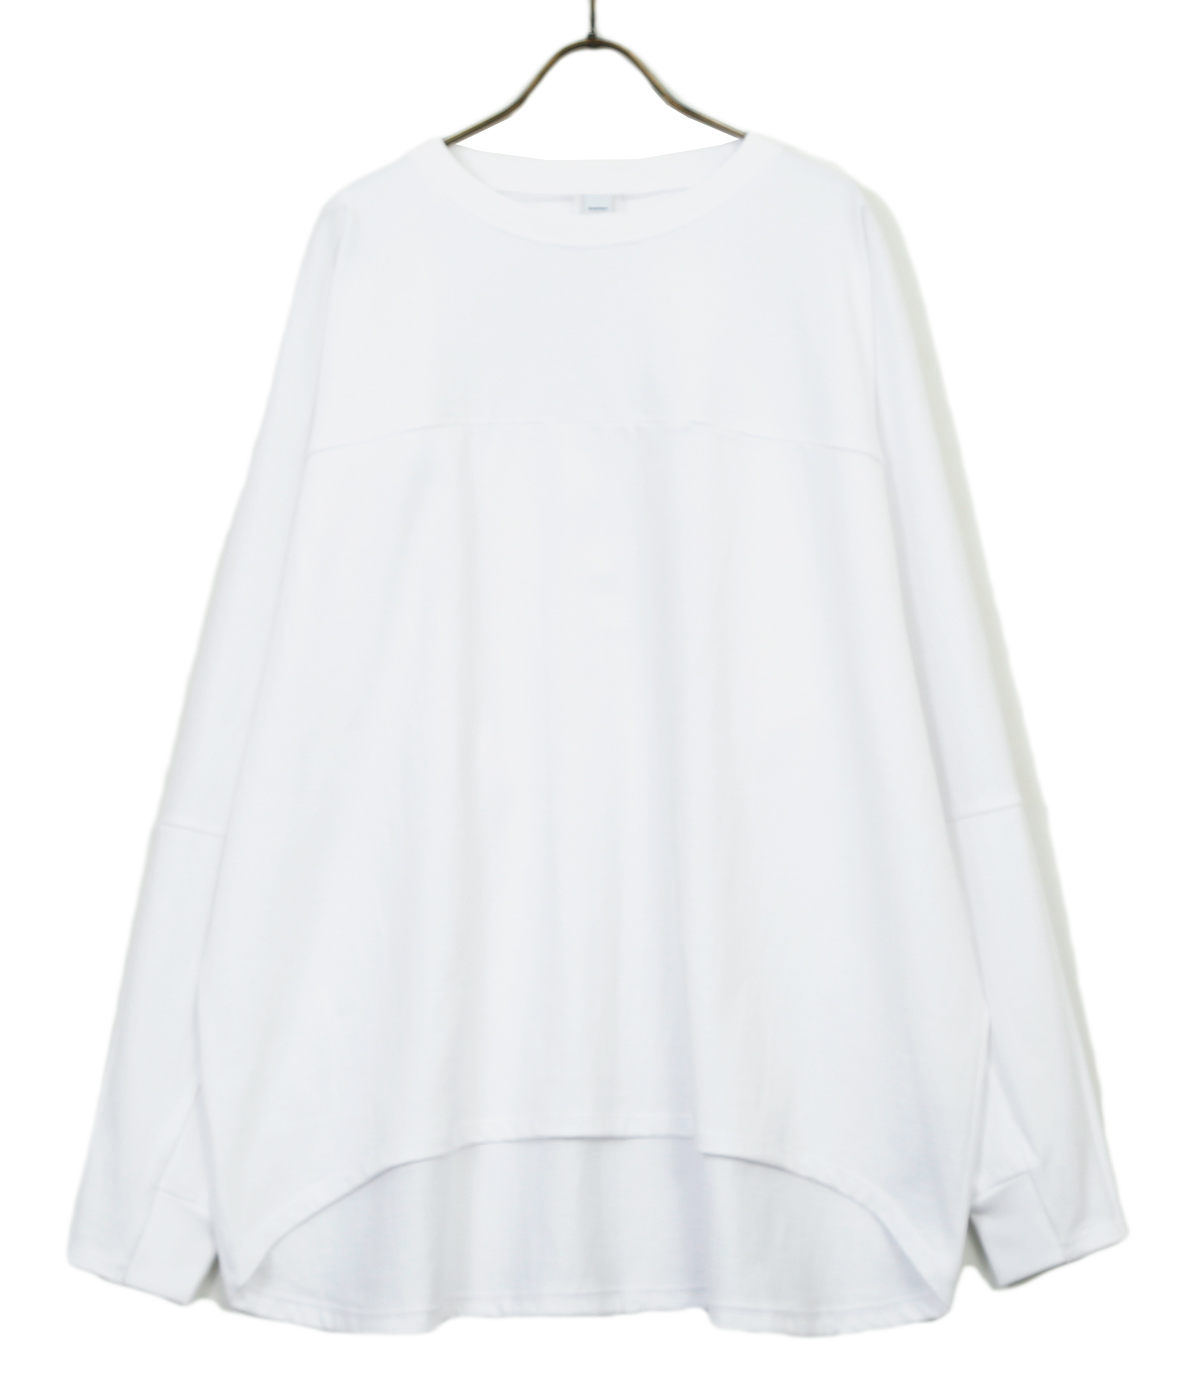 PRE_for GP Oversized FTB L/S Tee